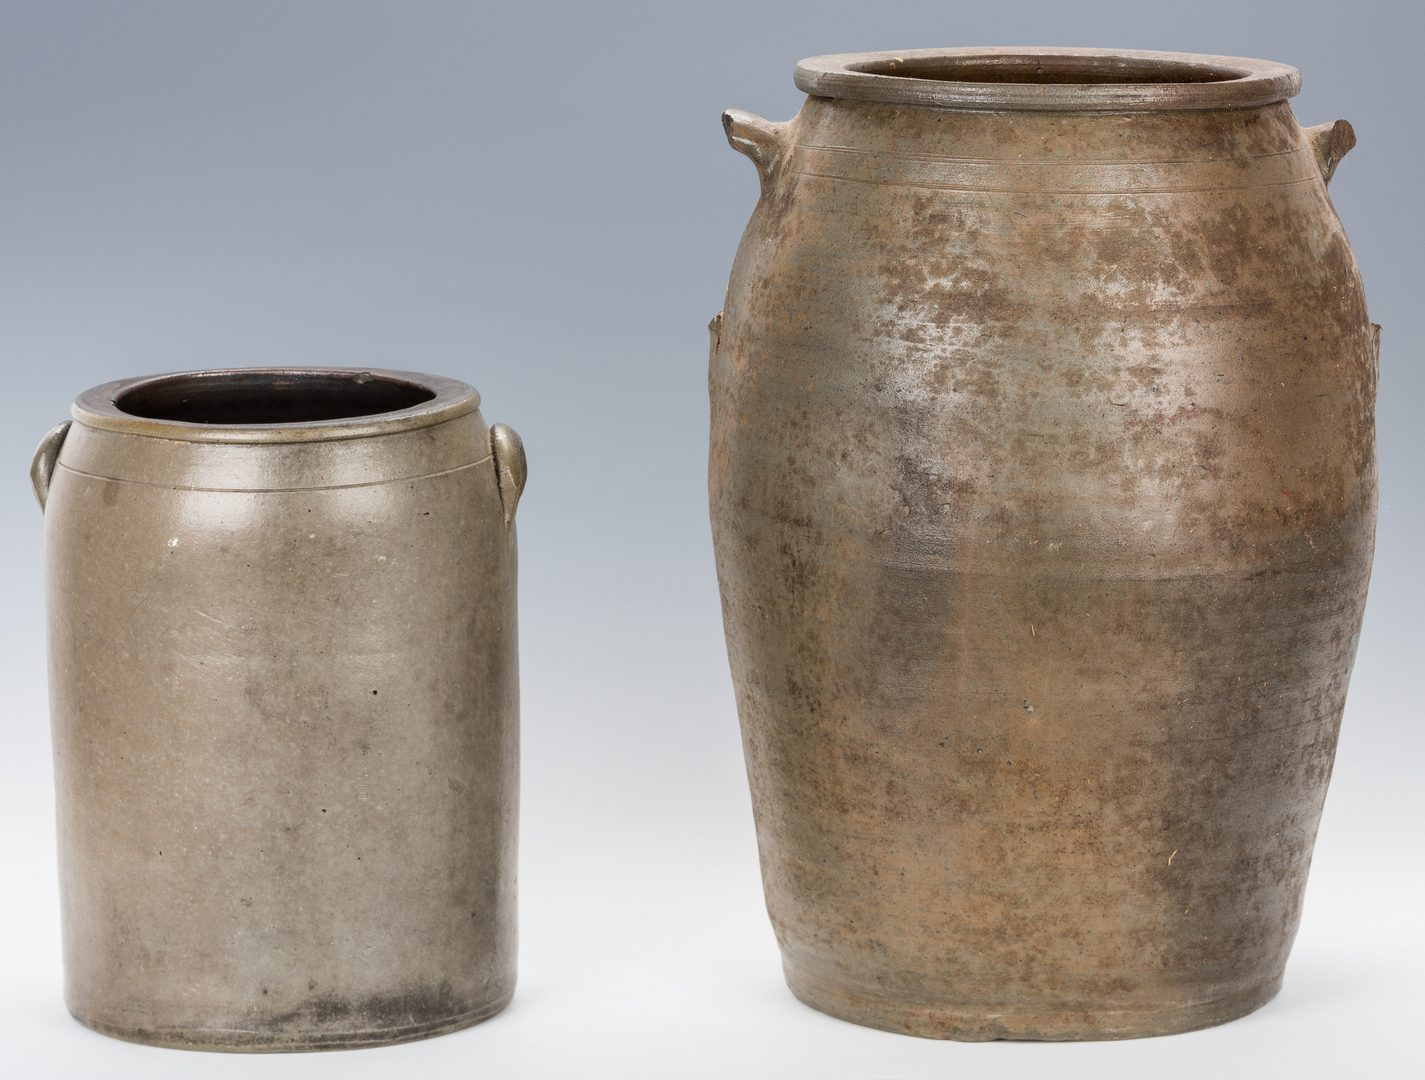 Lot 738: 2 KY Stoneware Pottery Jars, inc. Griggs & Grinstead